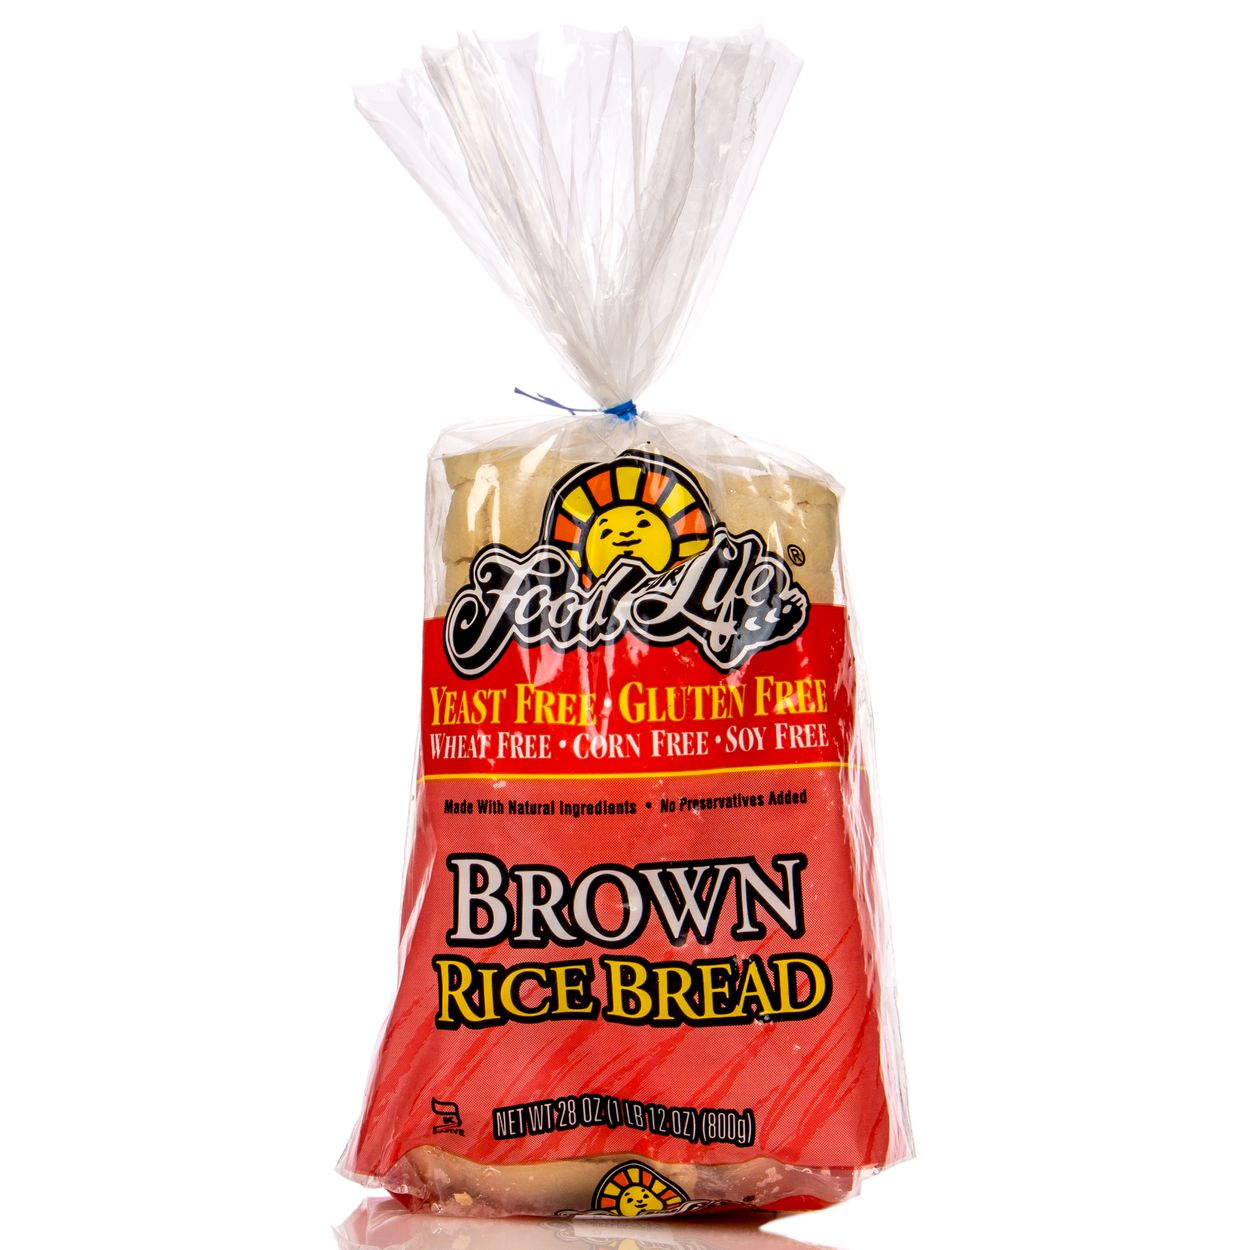 Food For Life - Brown Rice Bread, Yeast & Gluten Free